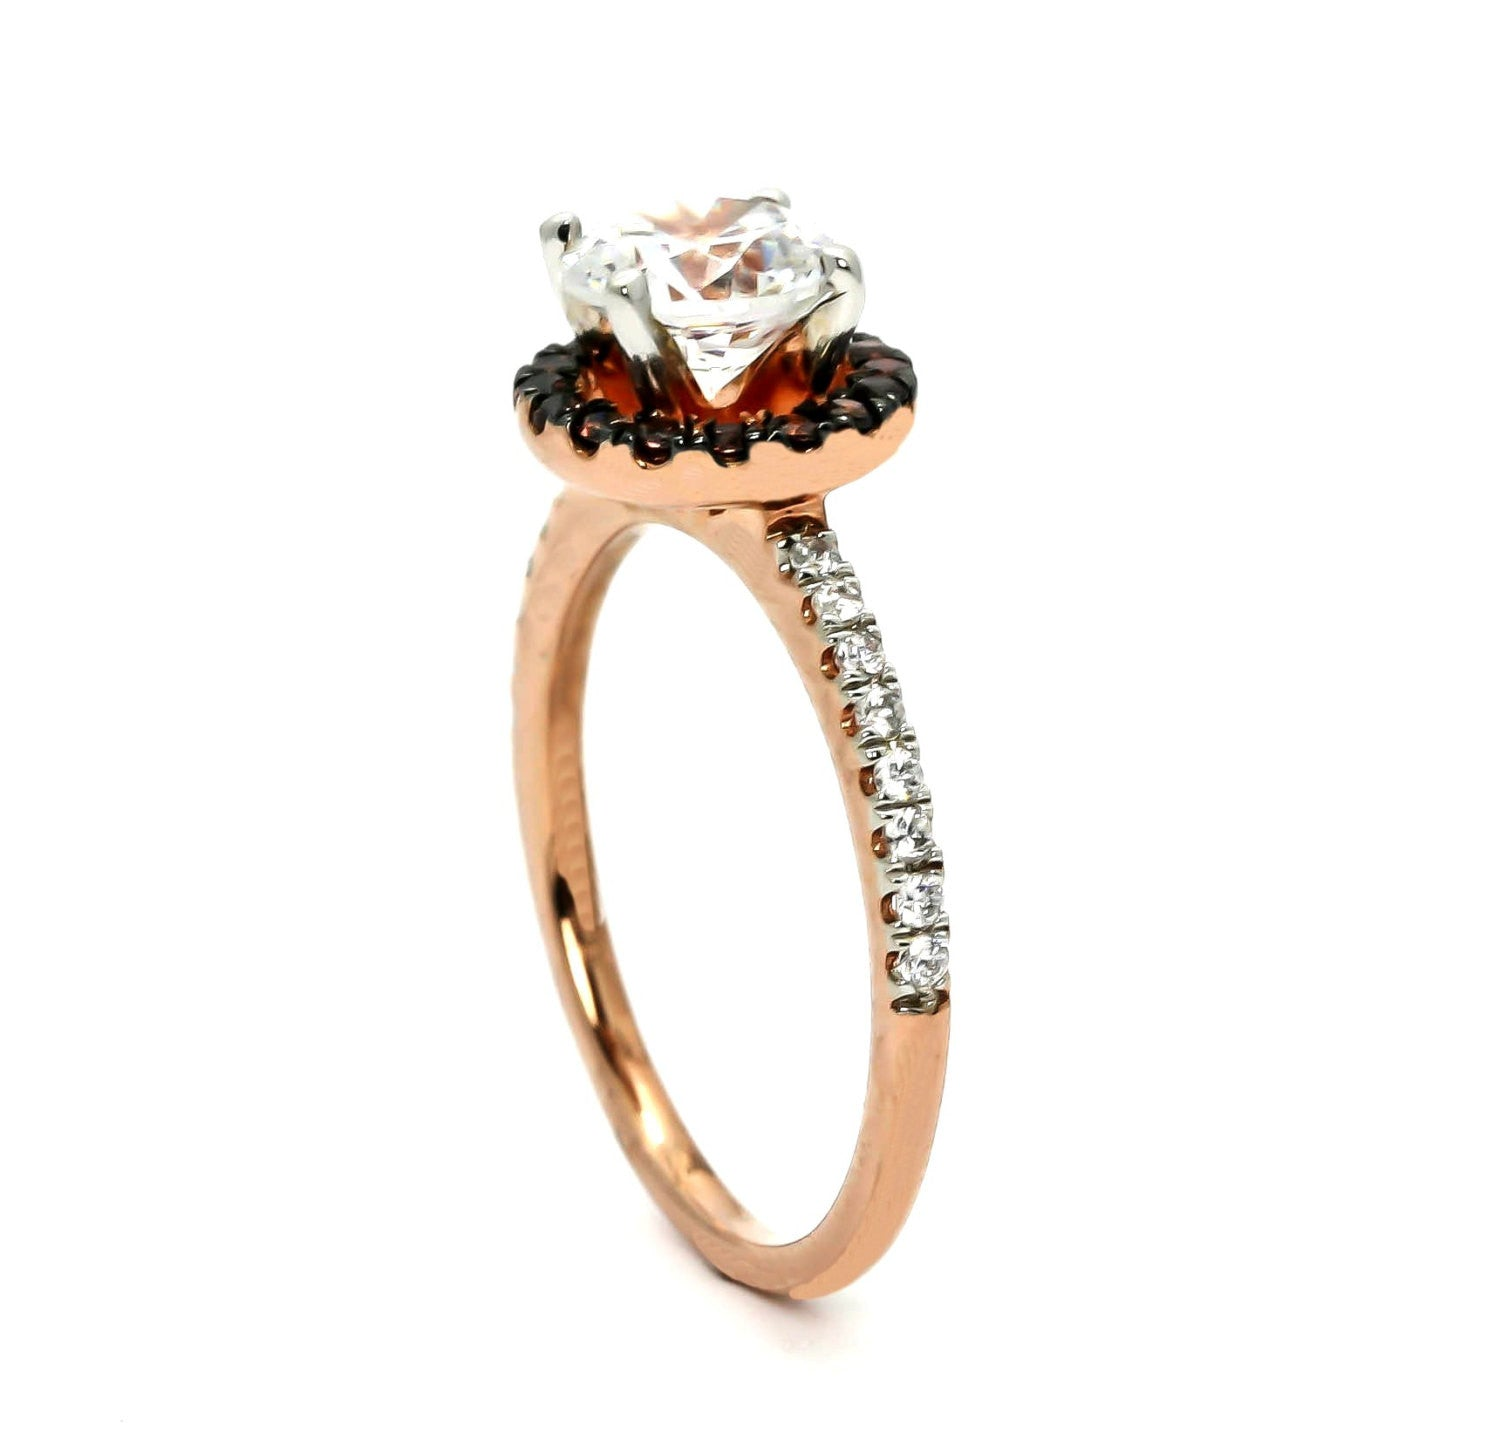 1 Carat Forever Brilliant Moissanite, Fancy Brown Diamond Halo, White Diamond Accent Stones, Rose Gold, Engagement Ring - FB94639